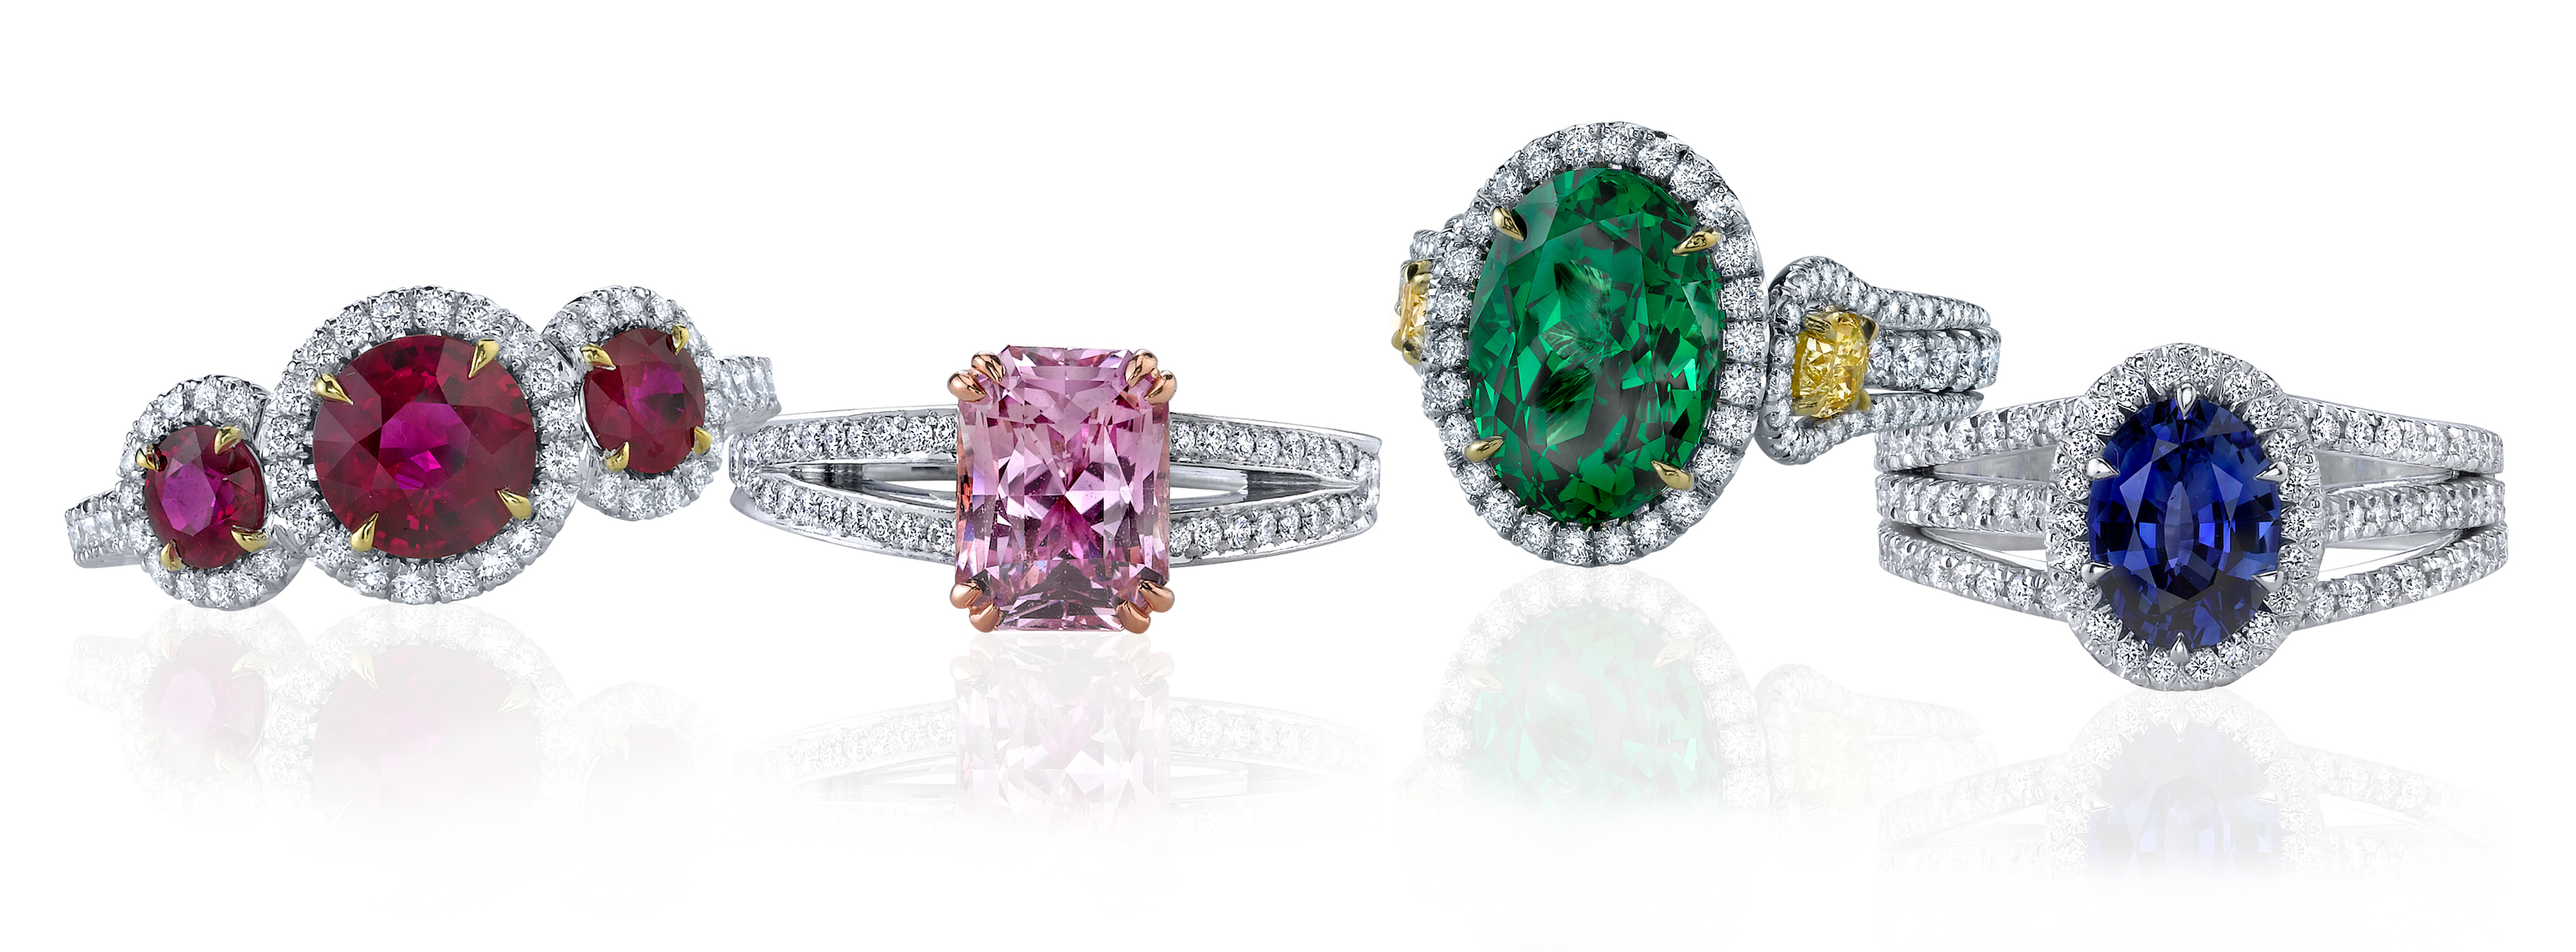 s traveler engagement for picchiotti features valentines elite to five buy gemstone colored rings day valentine